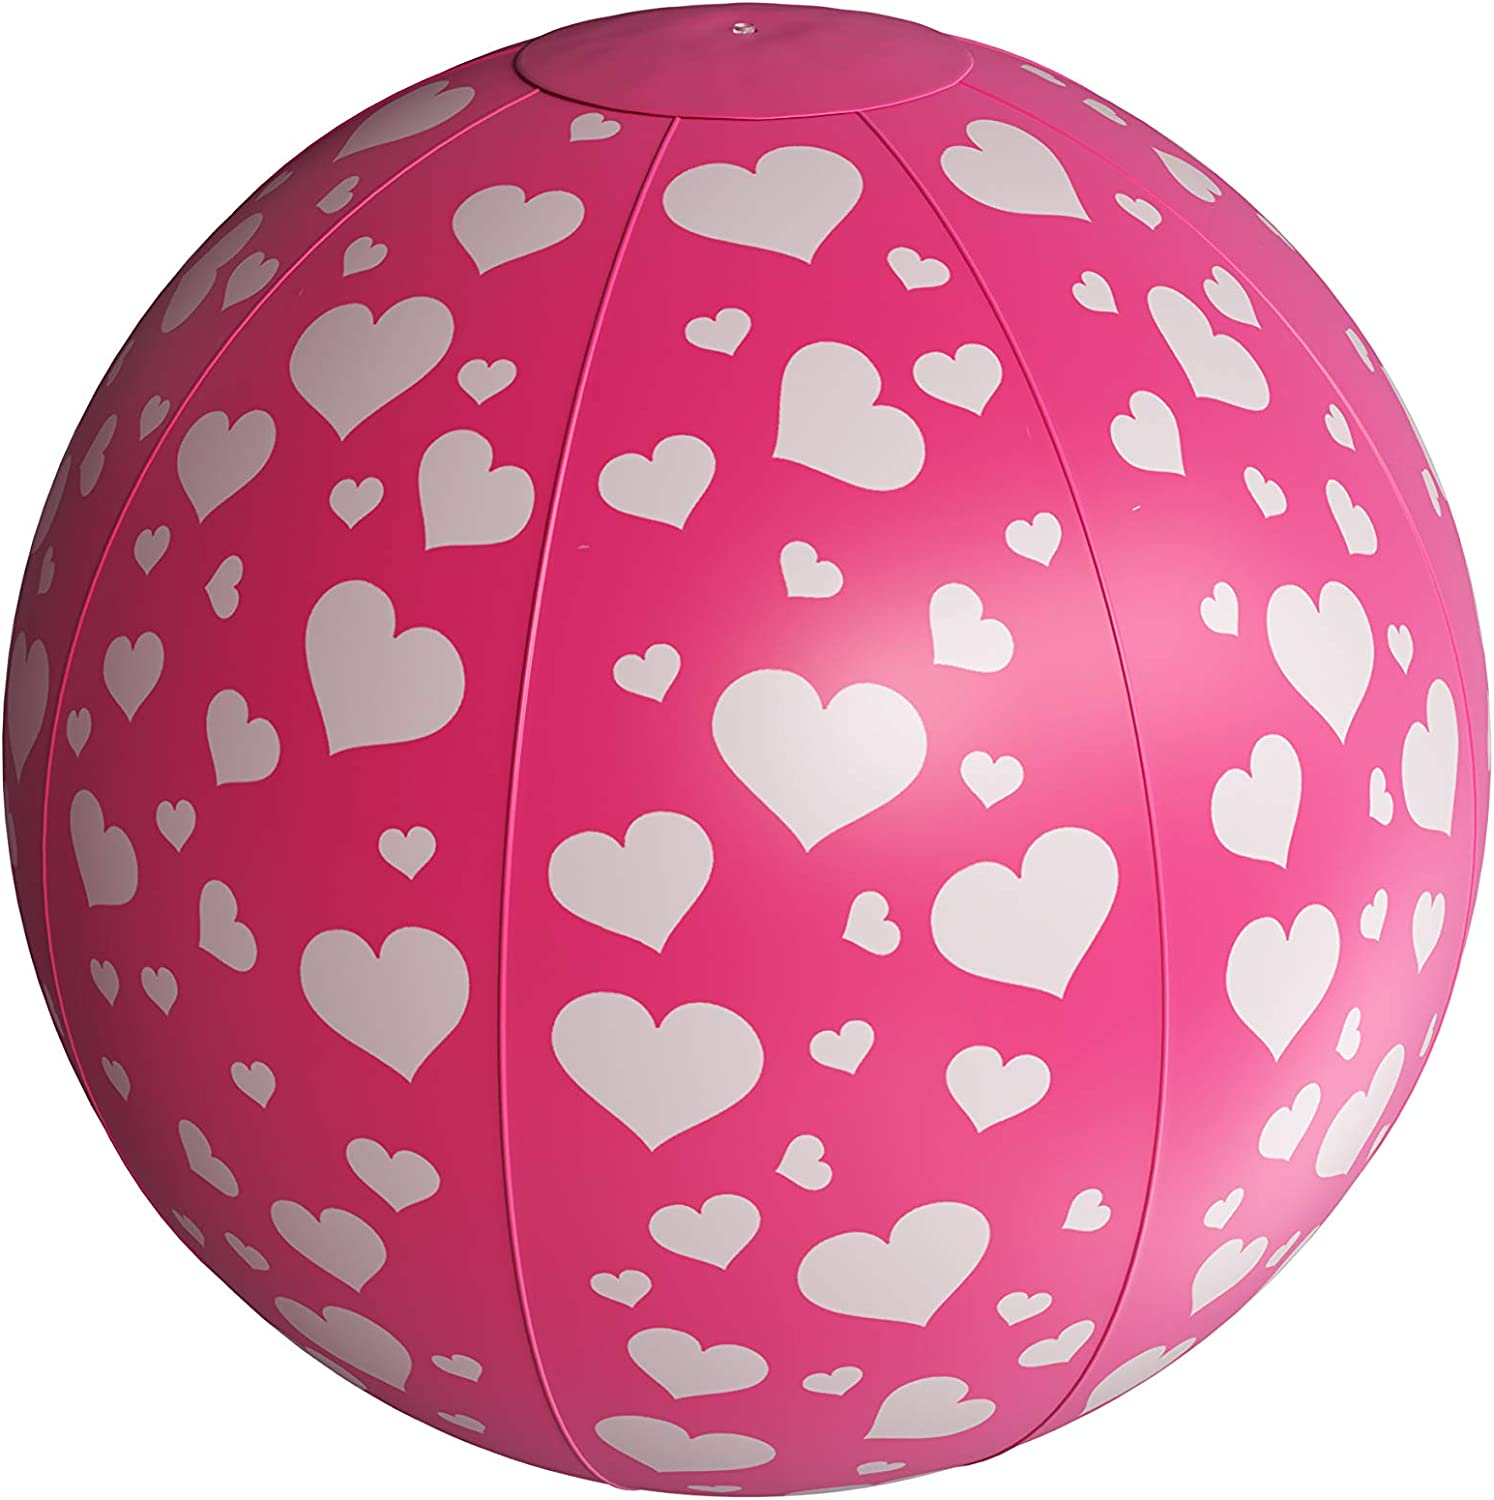 Popularity Splashie XL Max 69% OFF Beach Ball - Pink Inflatable D White with Heart